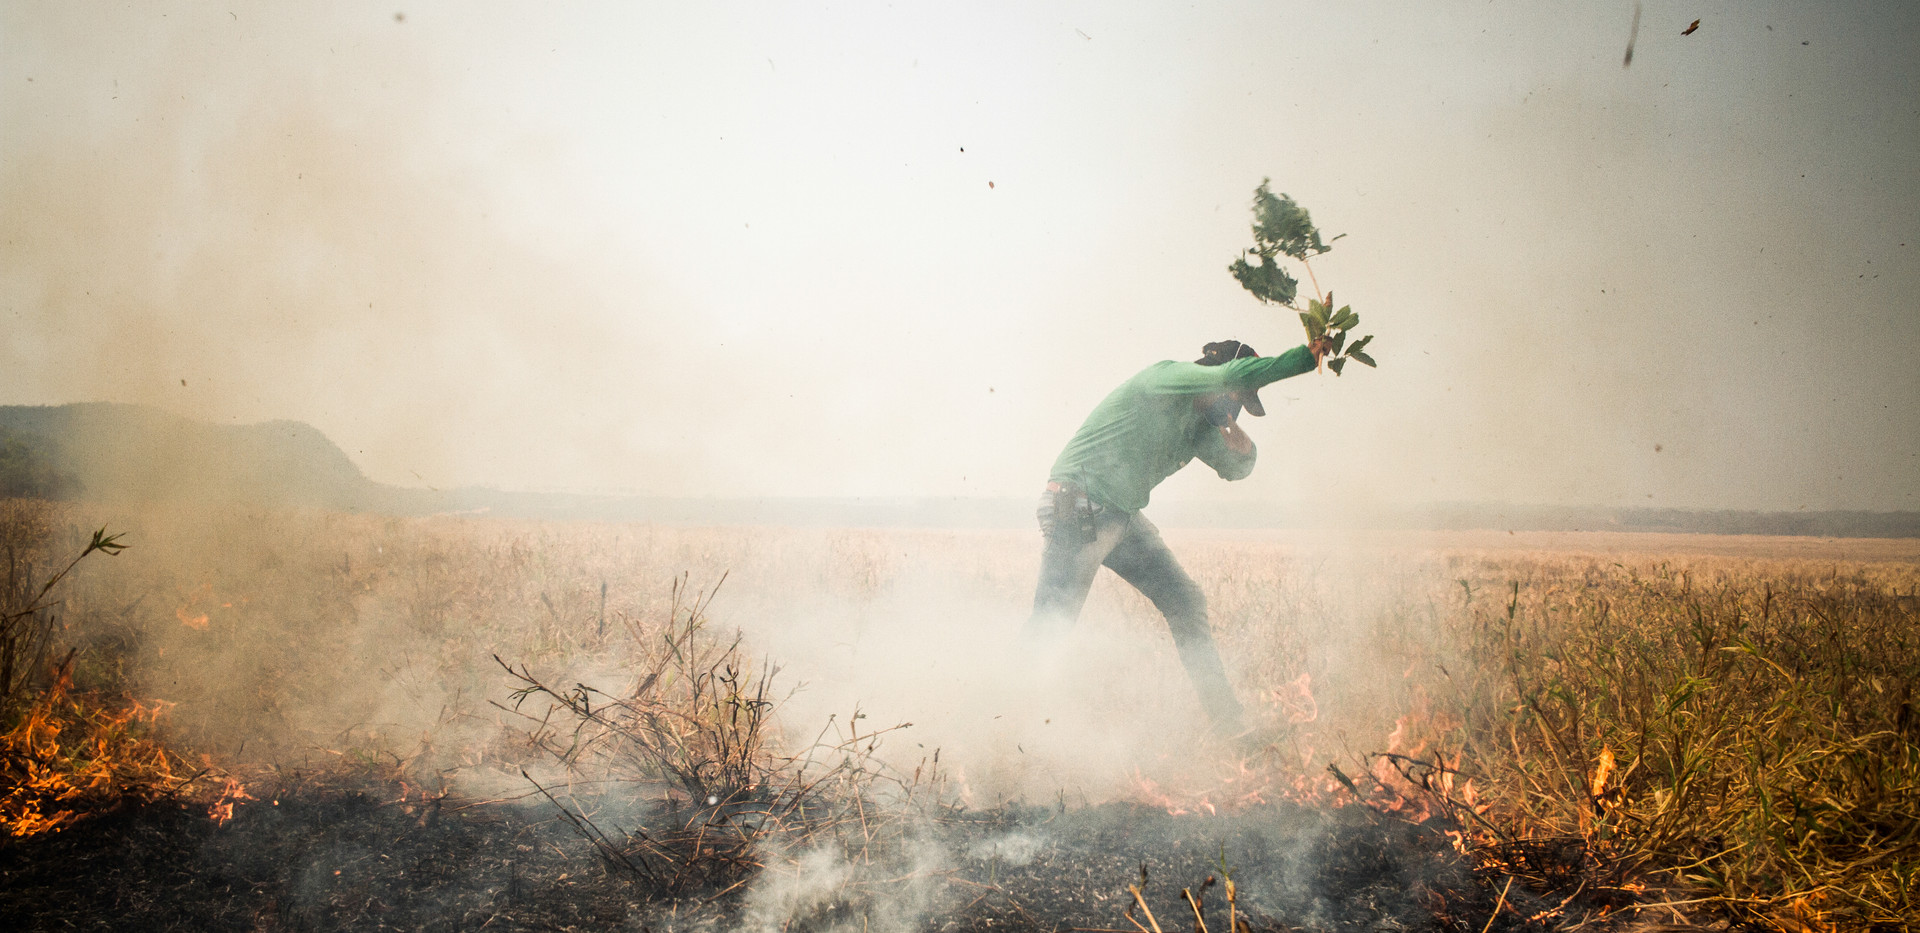 "A local Farmer putting out small fires in a scorched area of a farm in Nobres, State of Mato Grosso. The scorched areas of a fire can still become a danger, as a small spark from a burned tree can trigger another fire in the vicinity. After six hours of fighting, due to high temperatures of the afternoon and strong winds the fire became uncontrollable, no one could do nothing but watch and try to save some small areas of the farm. Lt. Whiby: ""it's really frustrating we did everything we could, but the farm owner really didn't care about any fire safety measure, when the fire came there was no water, tank trucks or enough buffer zones, the result is this all the fields and crops destroyed."""